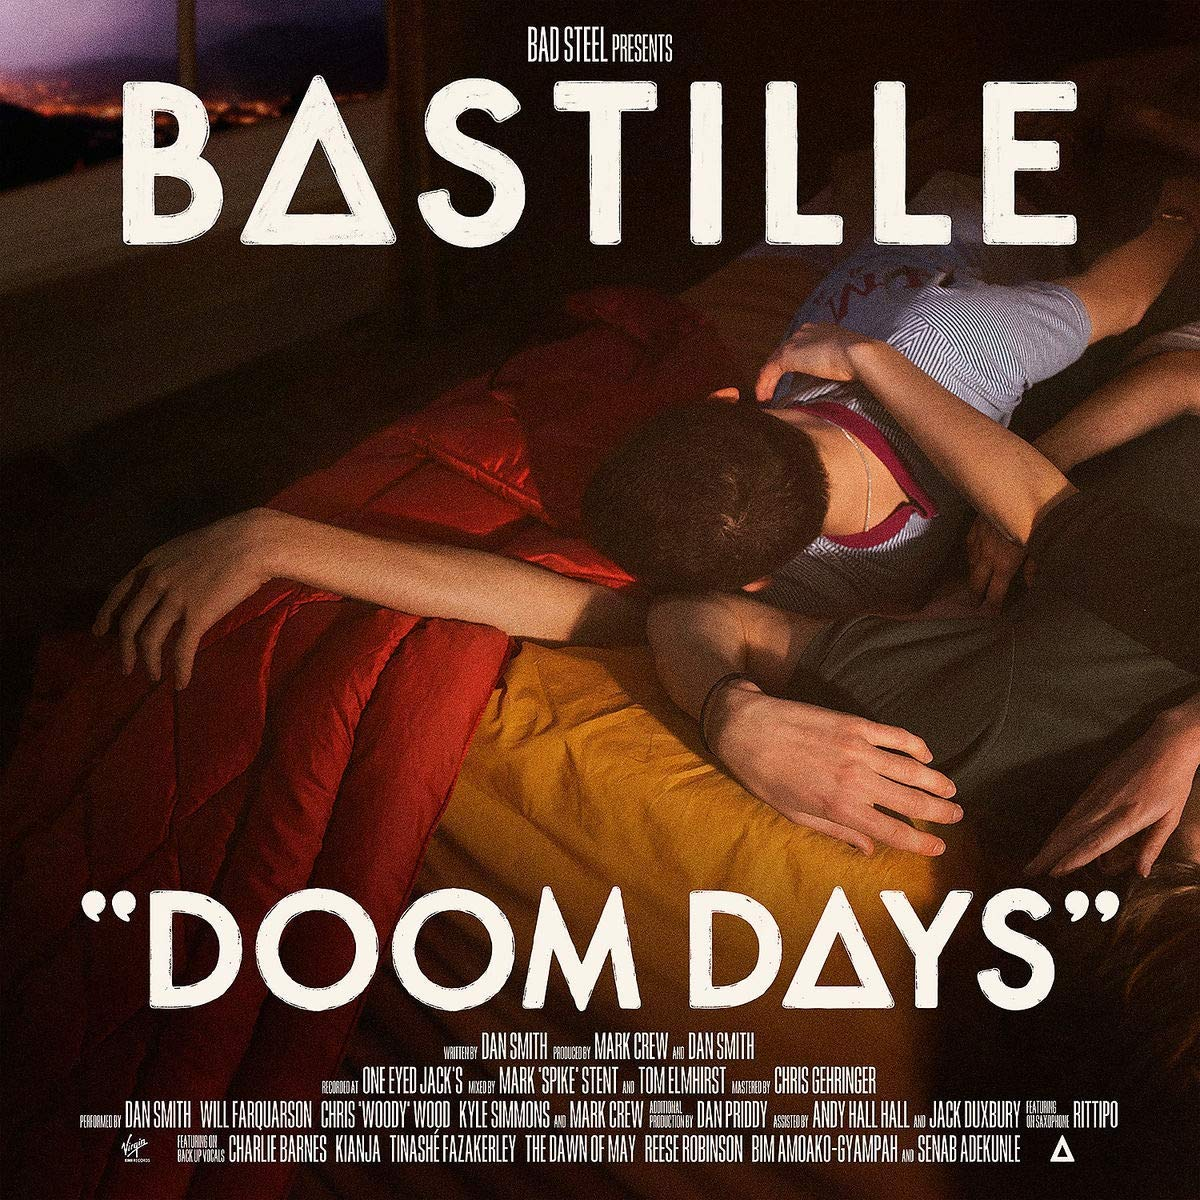 CD Shop - BASTILLE DOOM DAYS